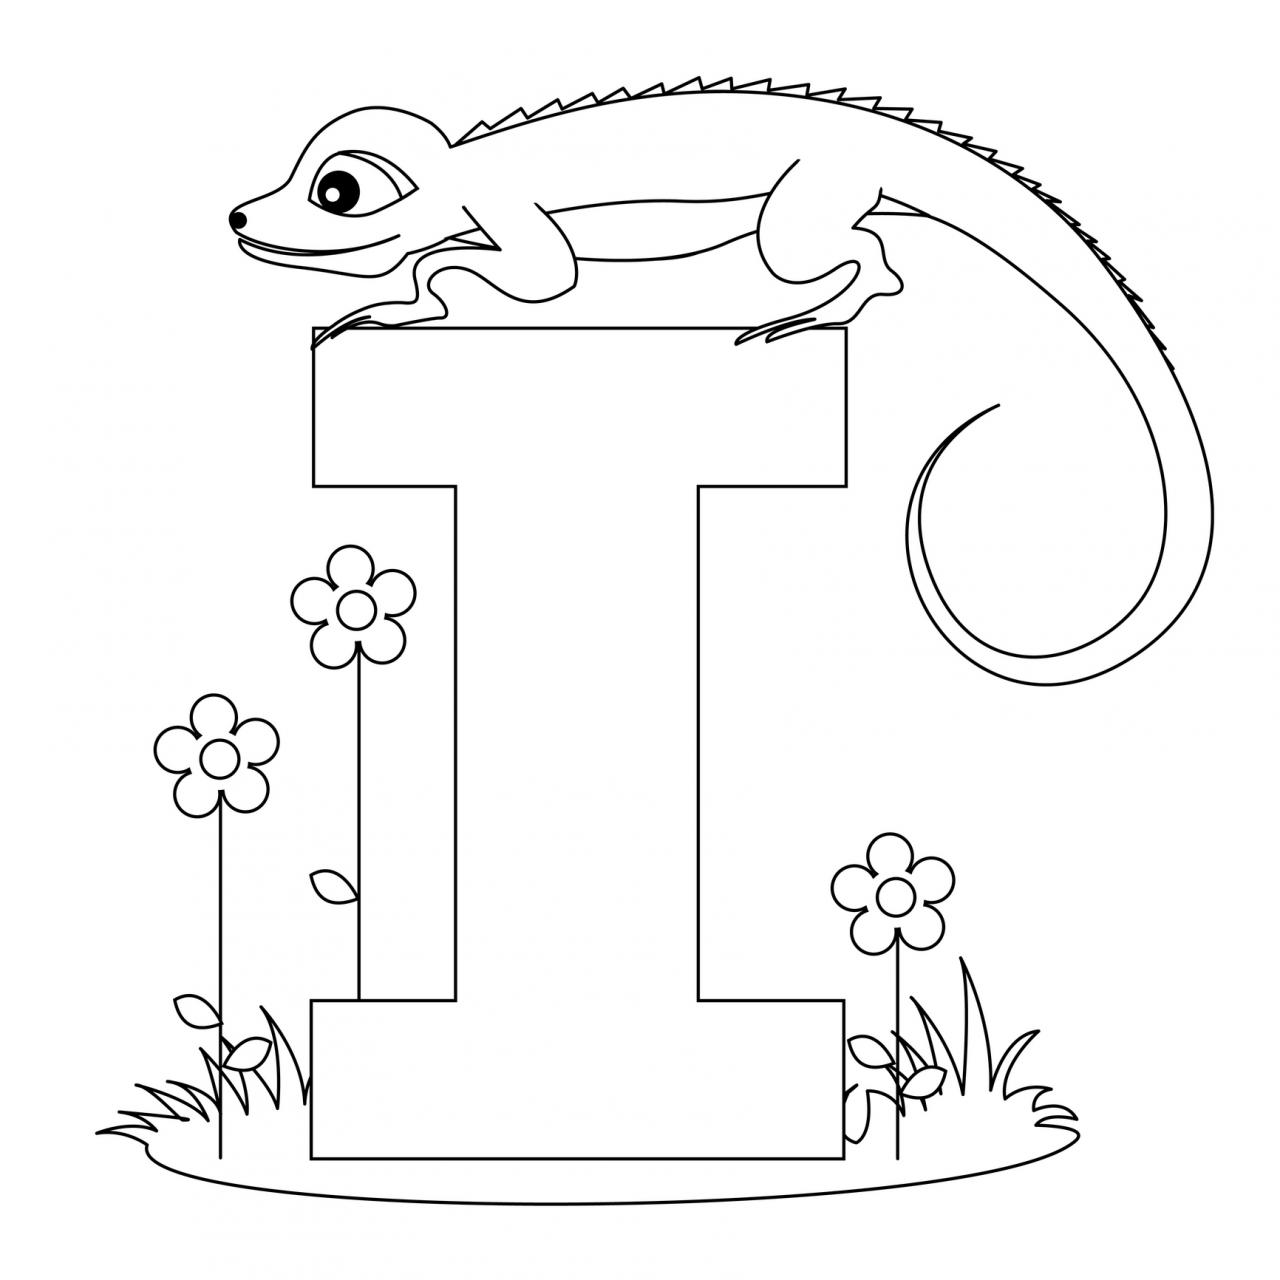 Bunch Ideas Of Printable Letter Coloring Pages For Toddlers On